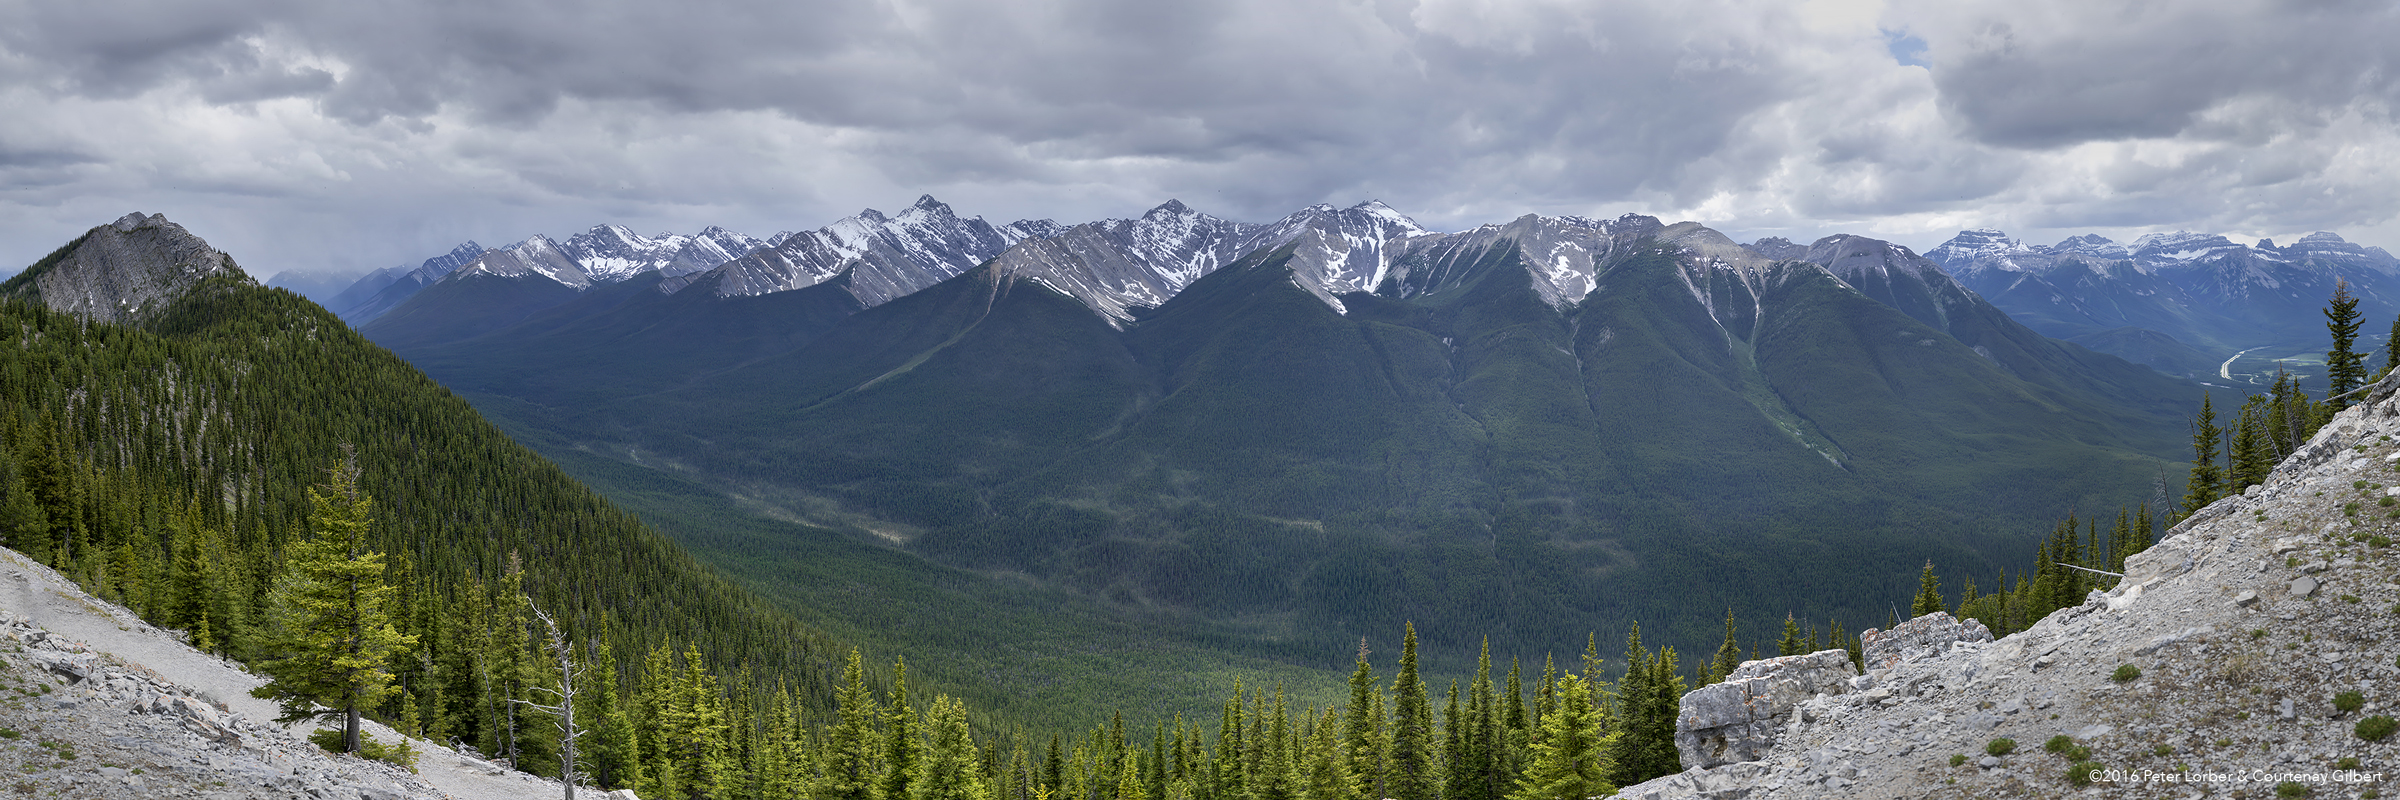 View from Sulphur Mountain 1